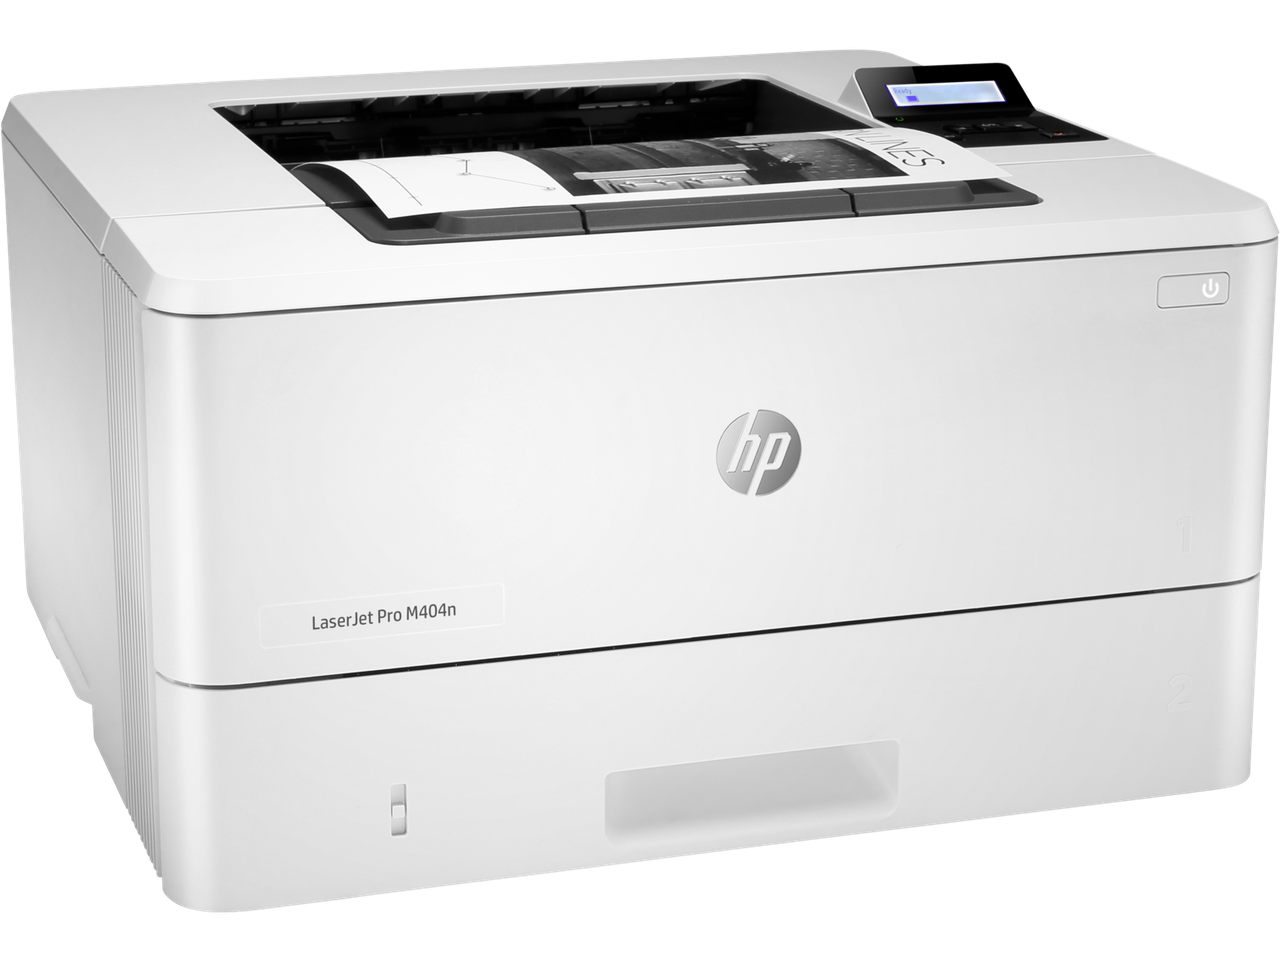 Принтер HP W1A52A HP LaserJet Pro M404n Printer (A4) , 1200 dpi, 38 ppm, 256 Mb, 1200 MHz, tray 100+250 pages,